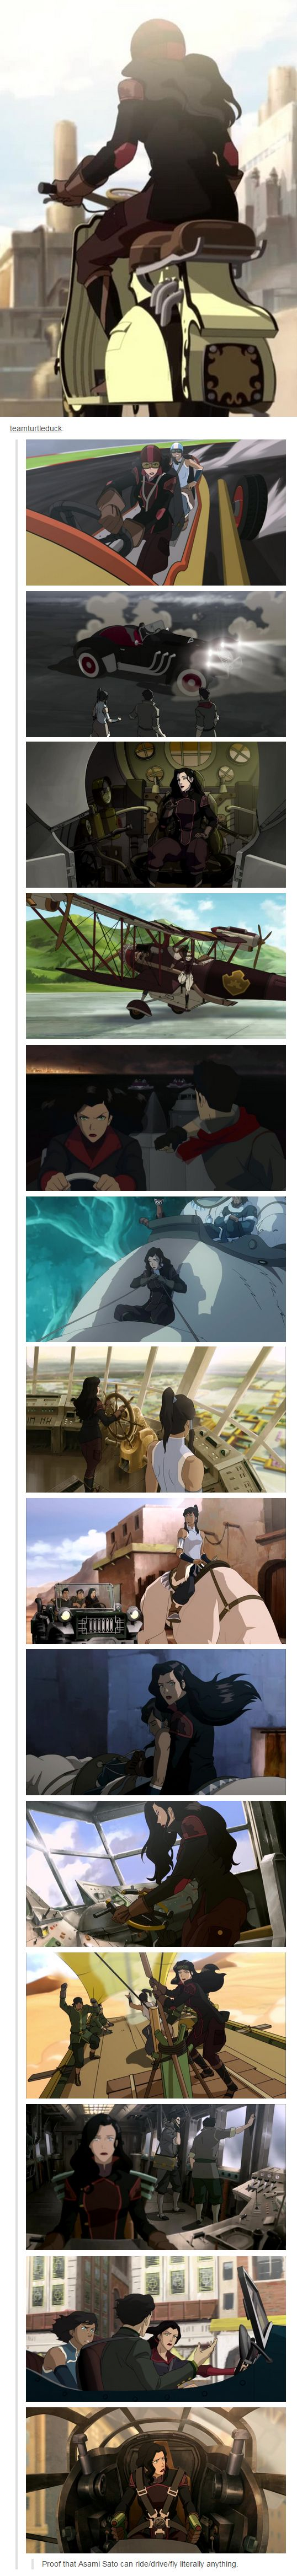 Legend of Korra: Proof that Asami Sato can ride/drive/fly literally anything.